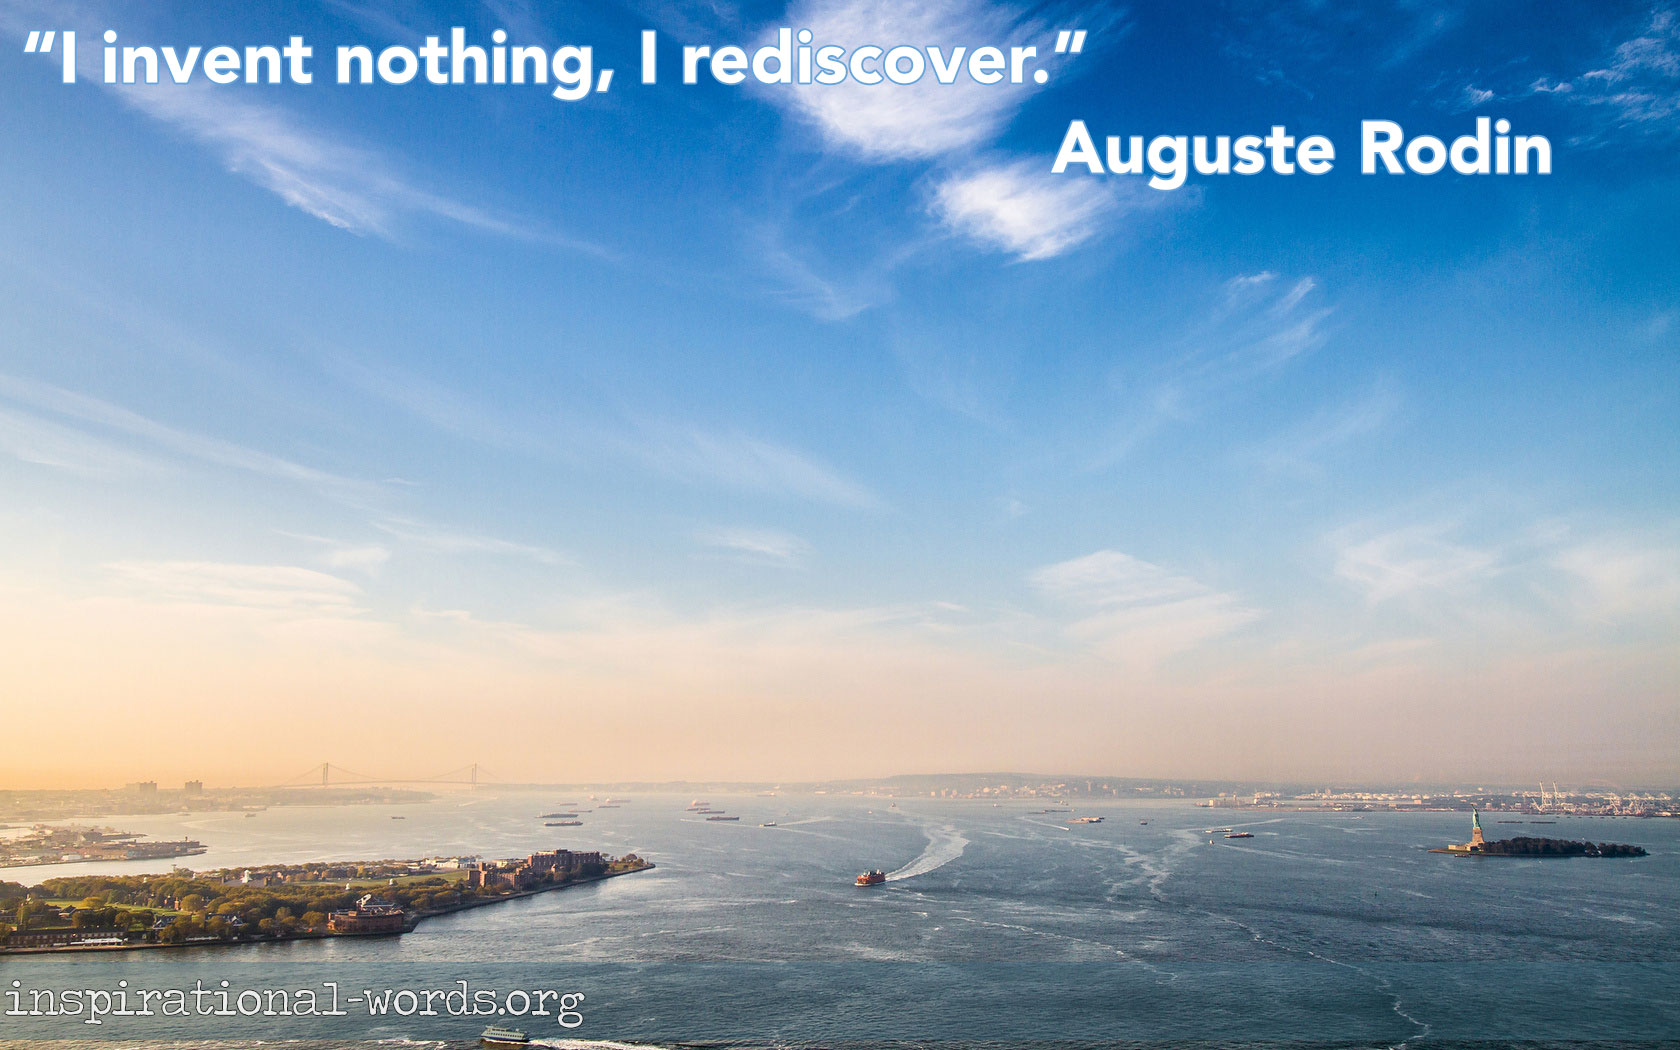 Inspirational Wallpaper Quote by Auguste Rodin